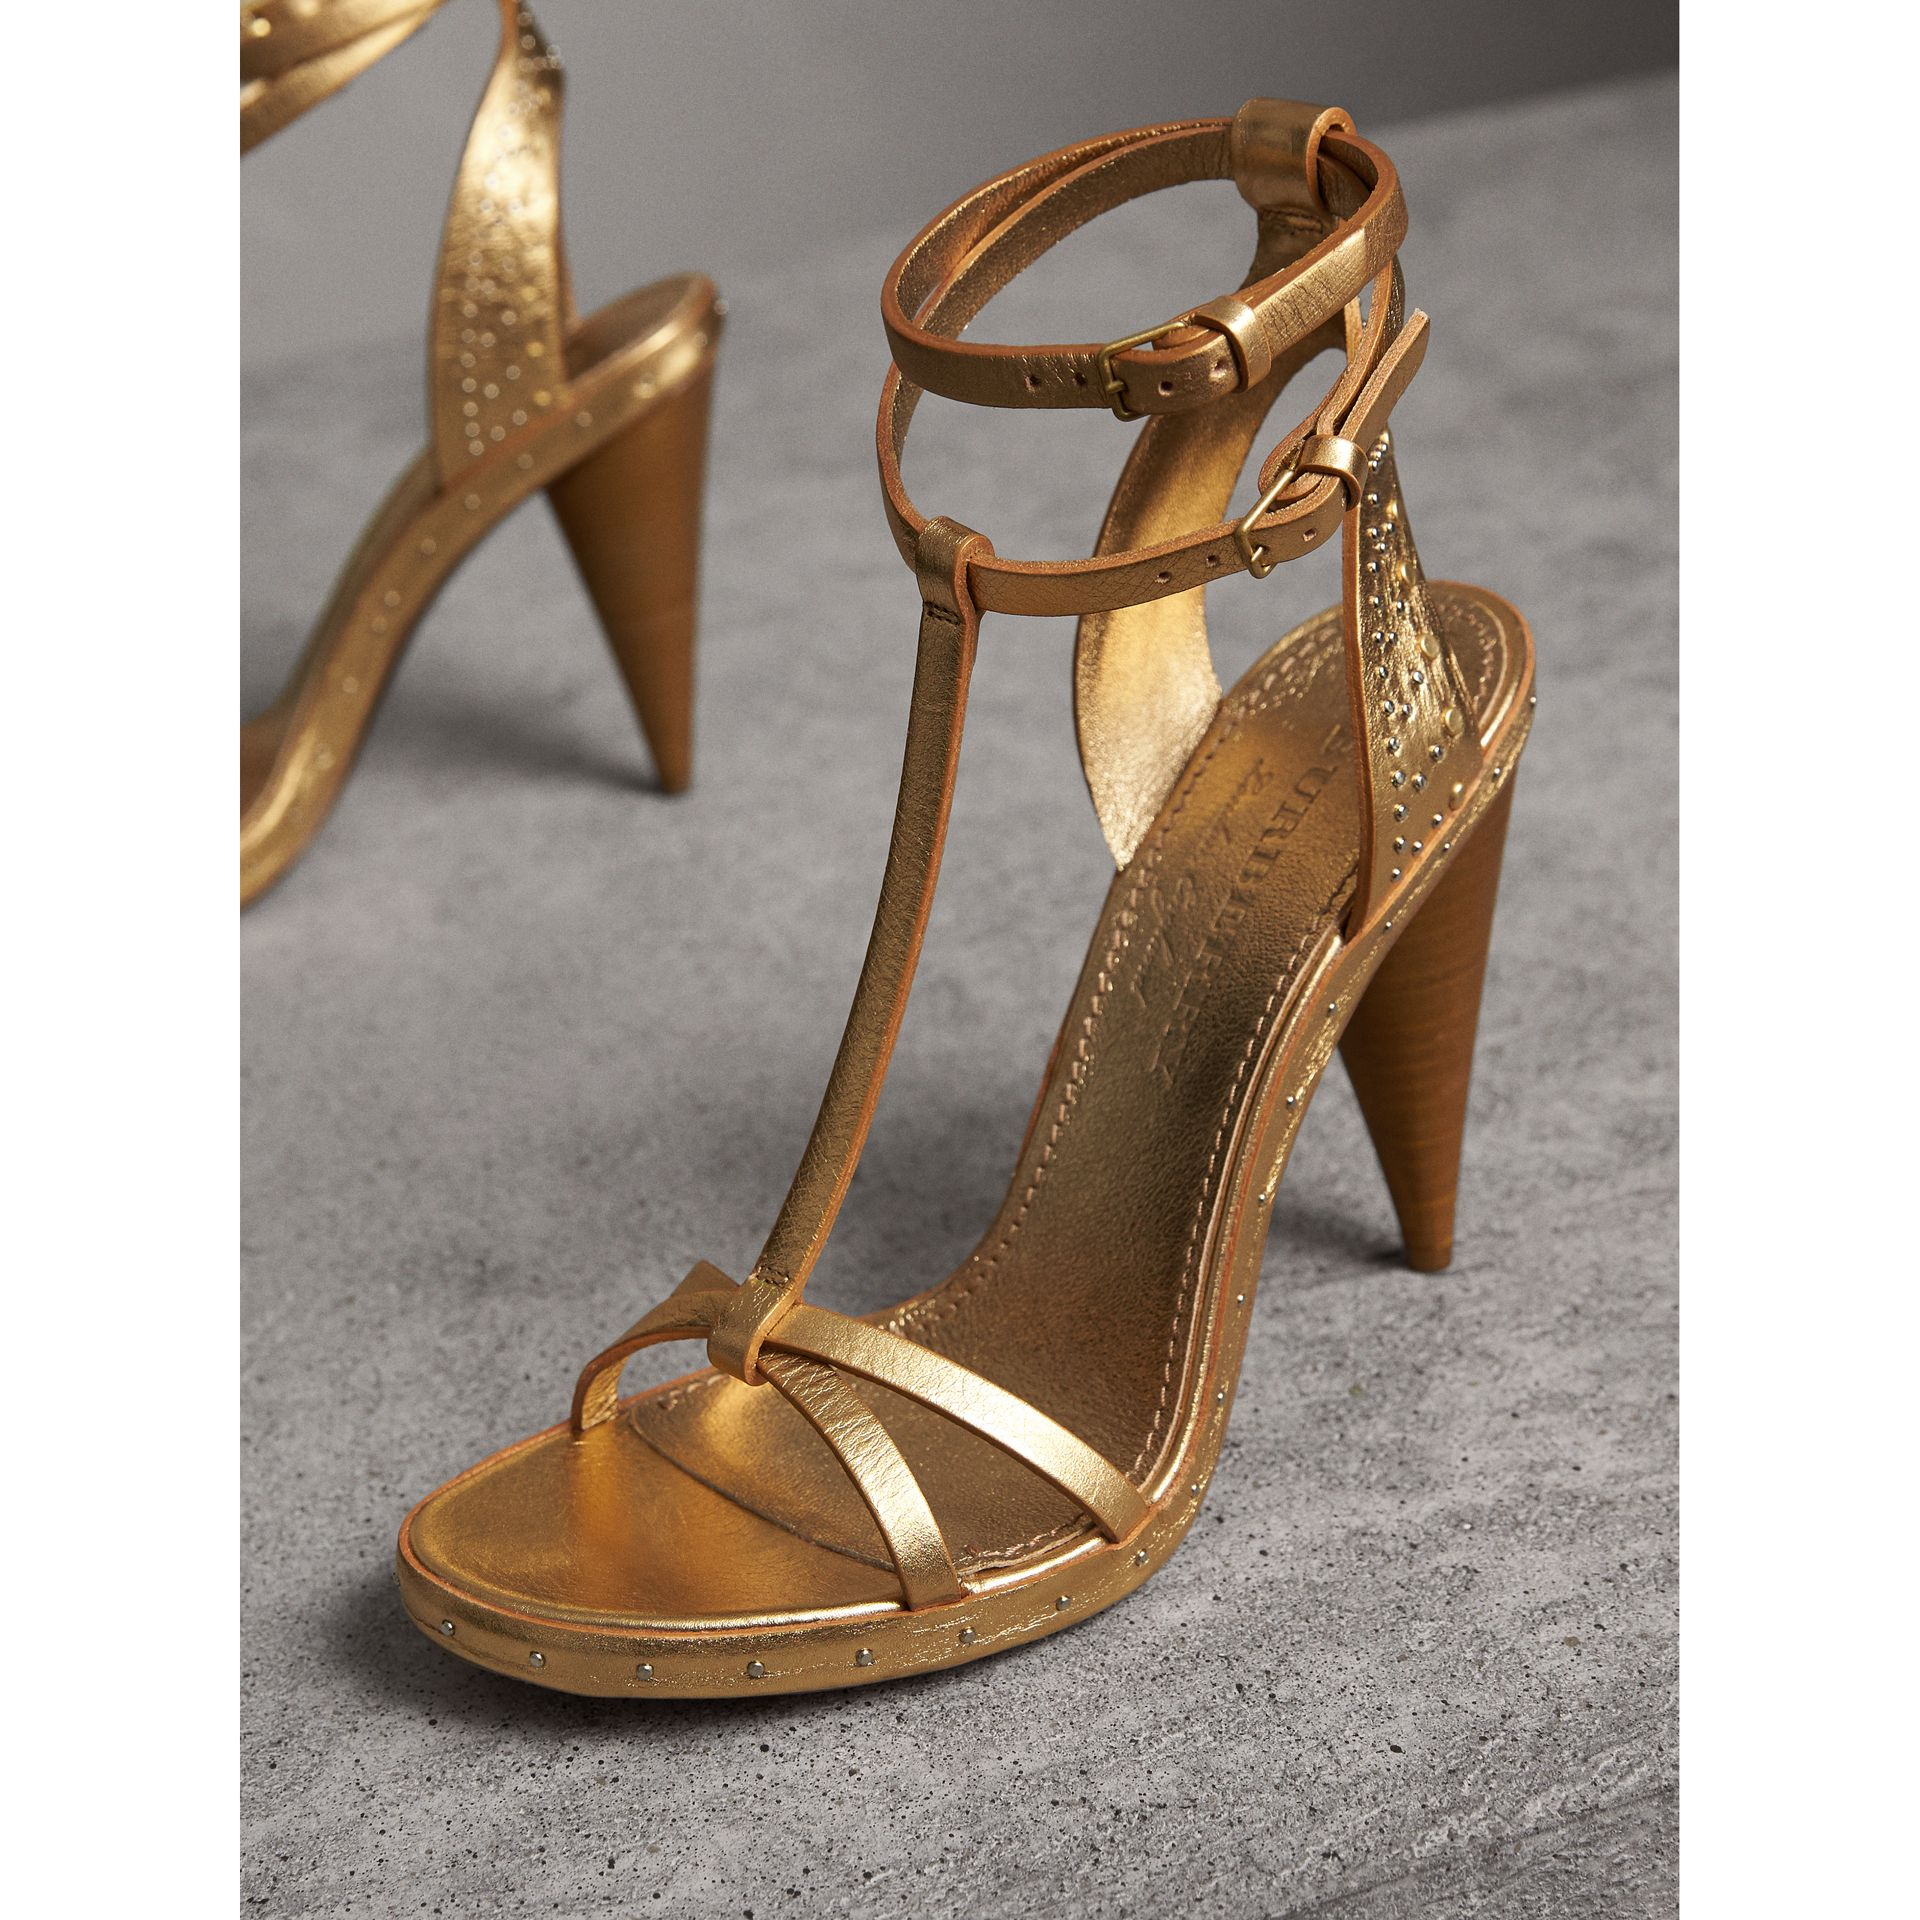 Riveted Metallic Leather High Cone-heel Sandals in Gold | Burberry - gallery image 5